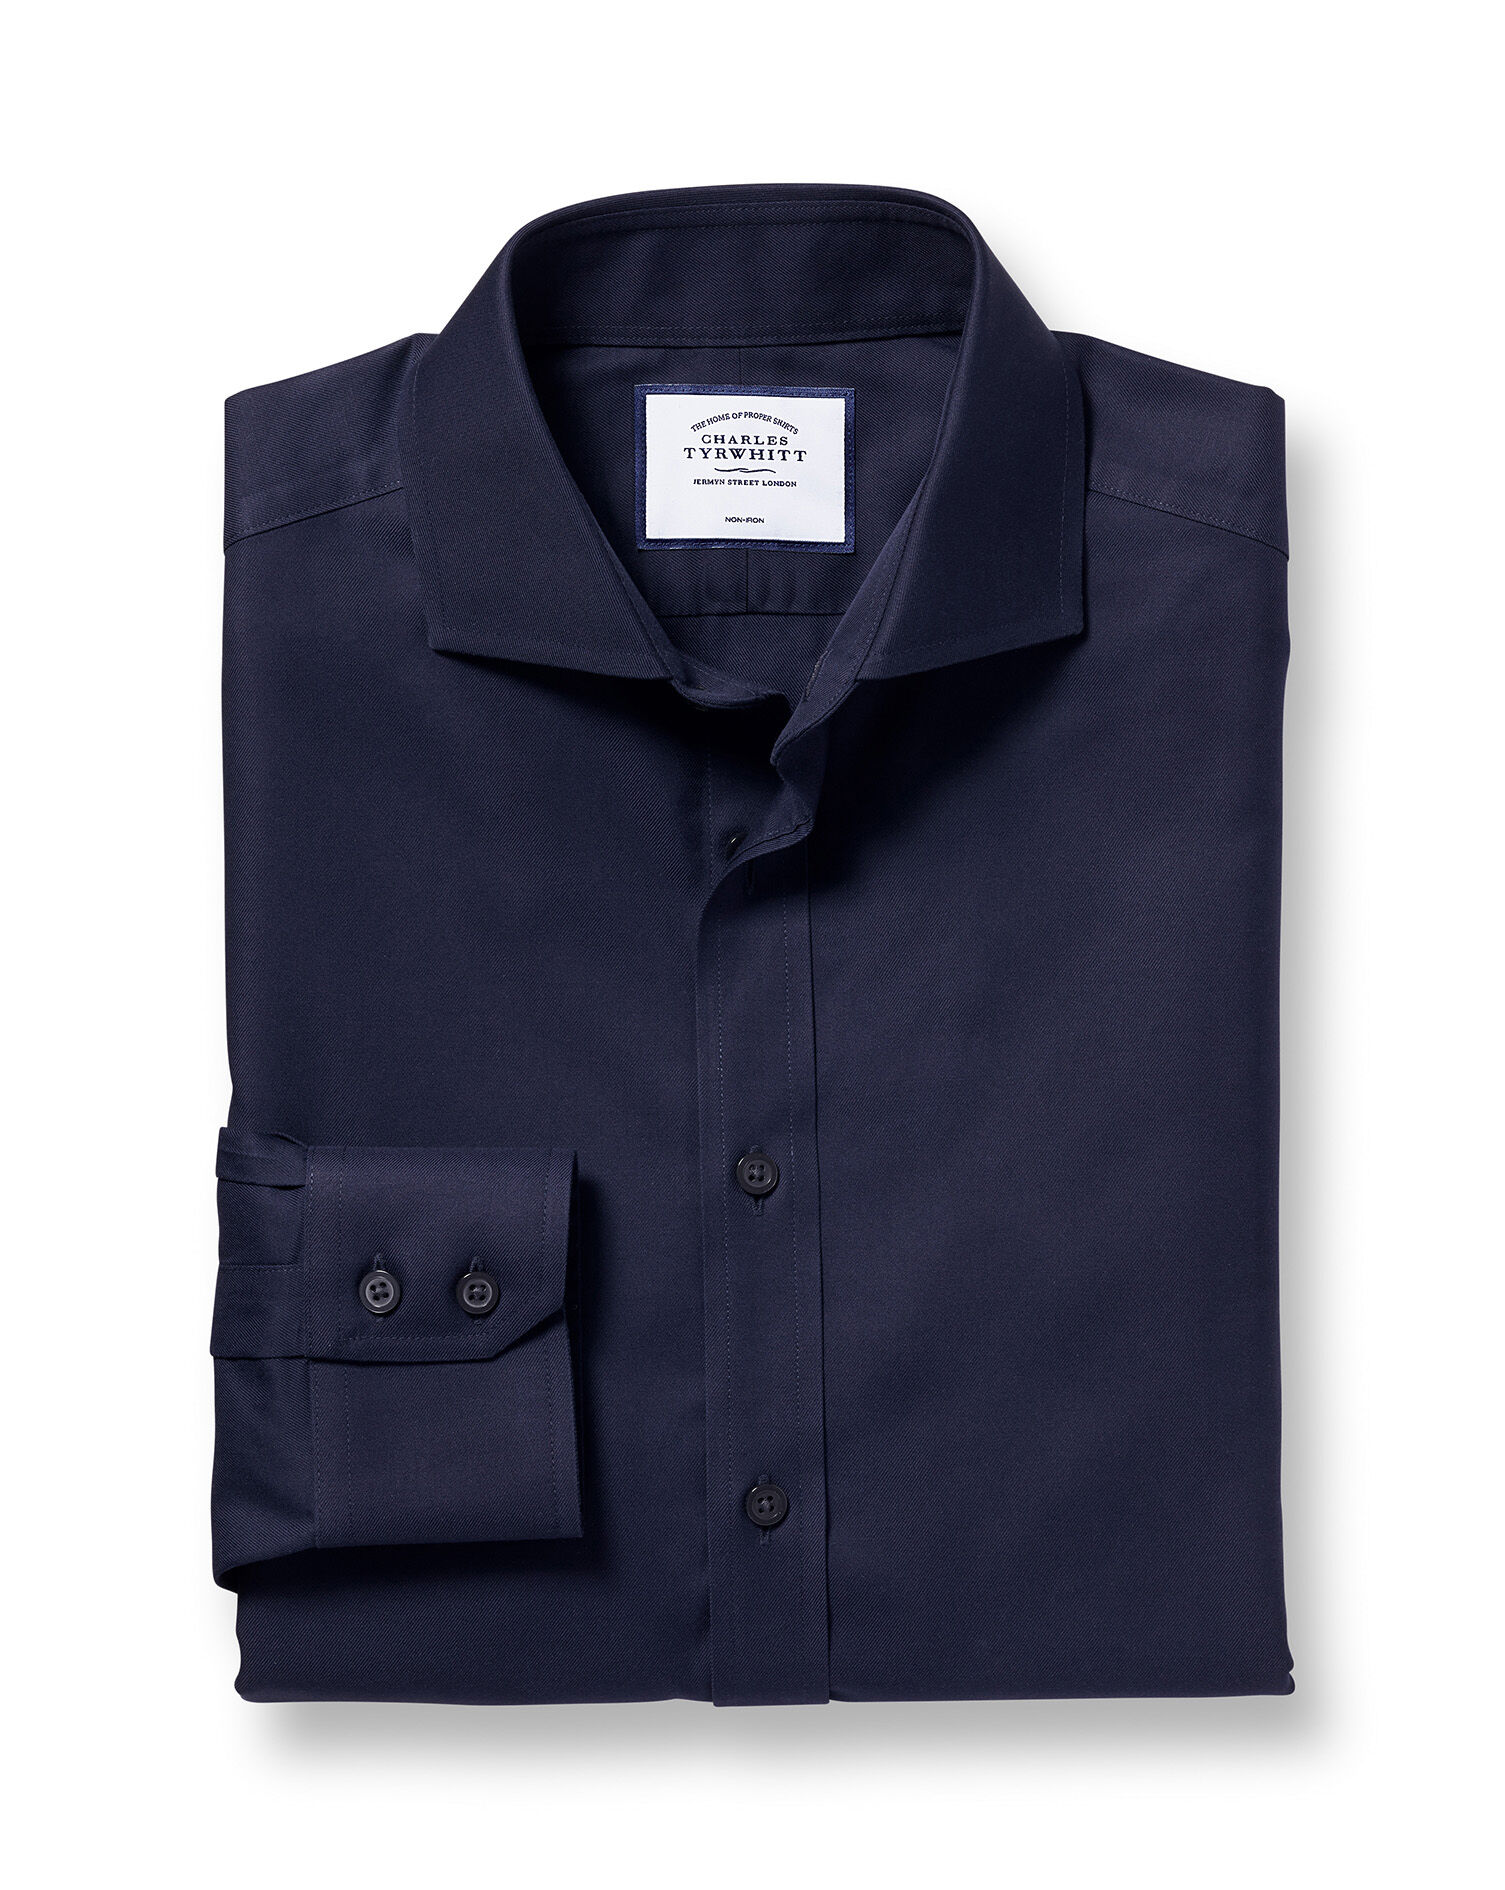 Slim Fit Cutaway Non-Iron Twill Navy Blue Cotton Formal Shirt Double Cuff Size 16.5/34 by Charles Ty